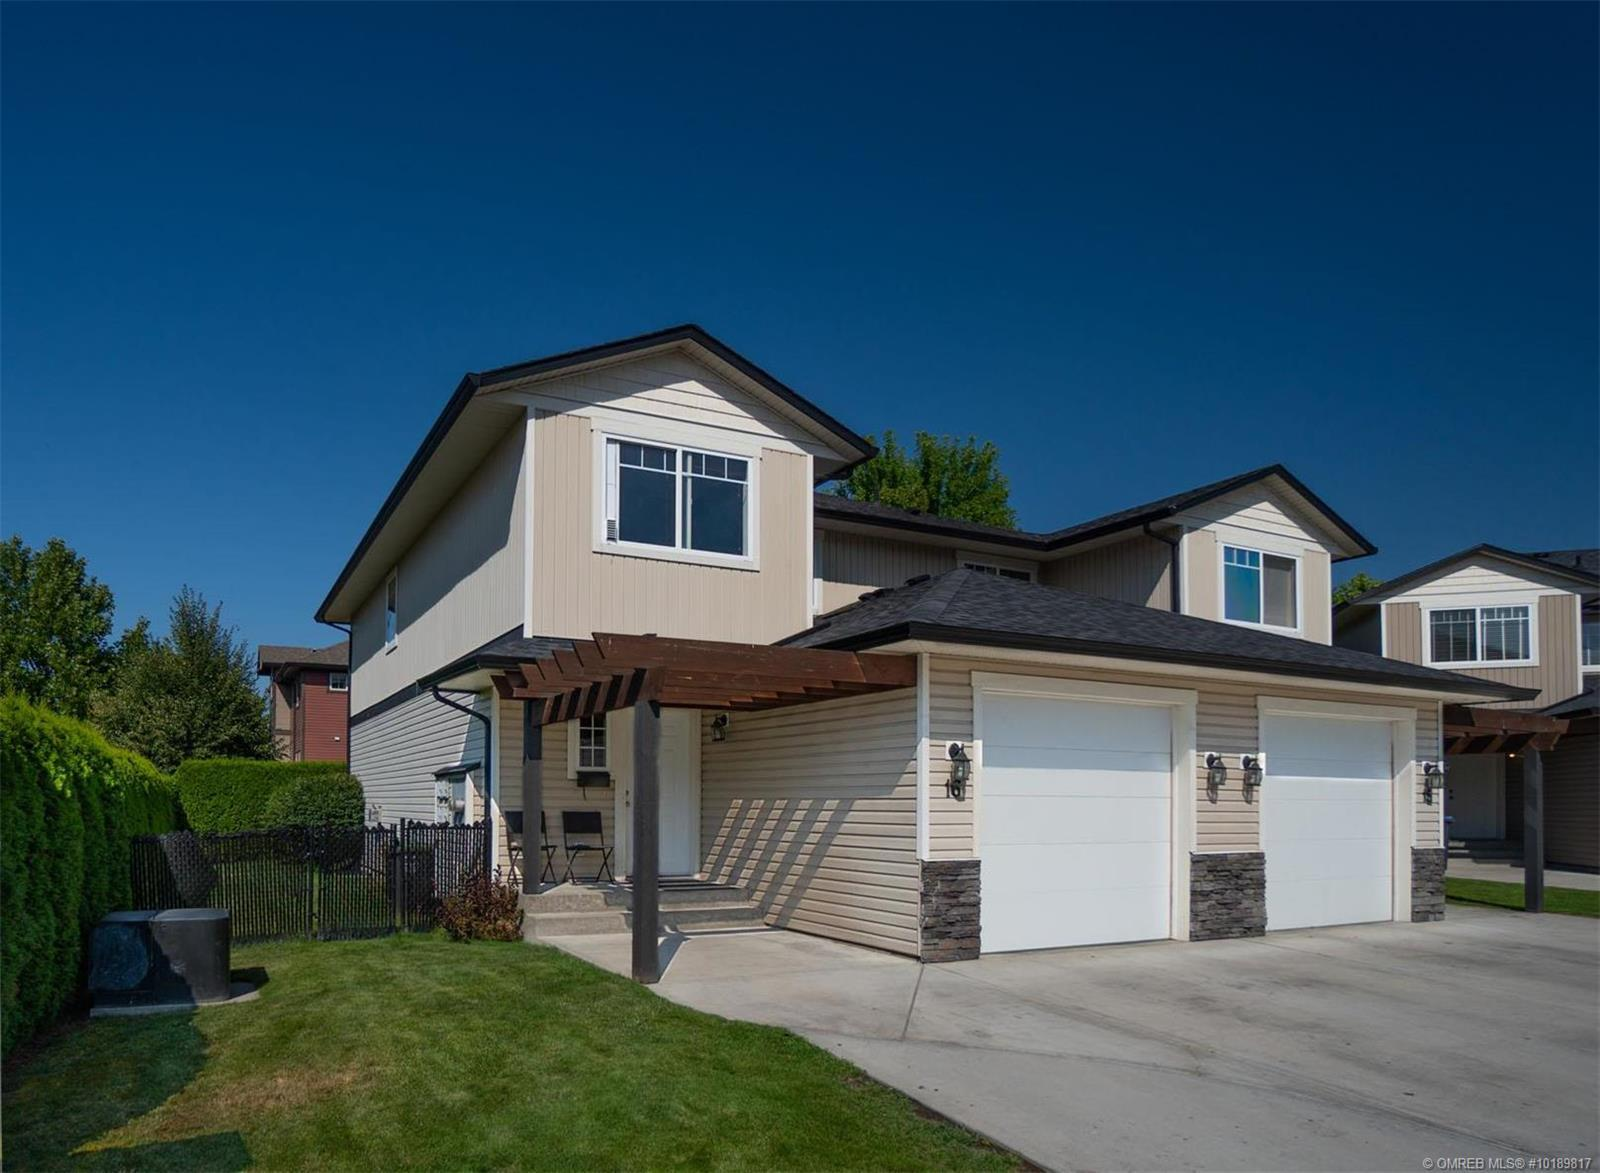 Removed: 16 - 180 Mccurdy Road East, Kelowna, BC - Removed on 2020-03-02 20:00:06